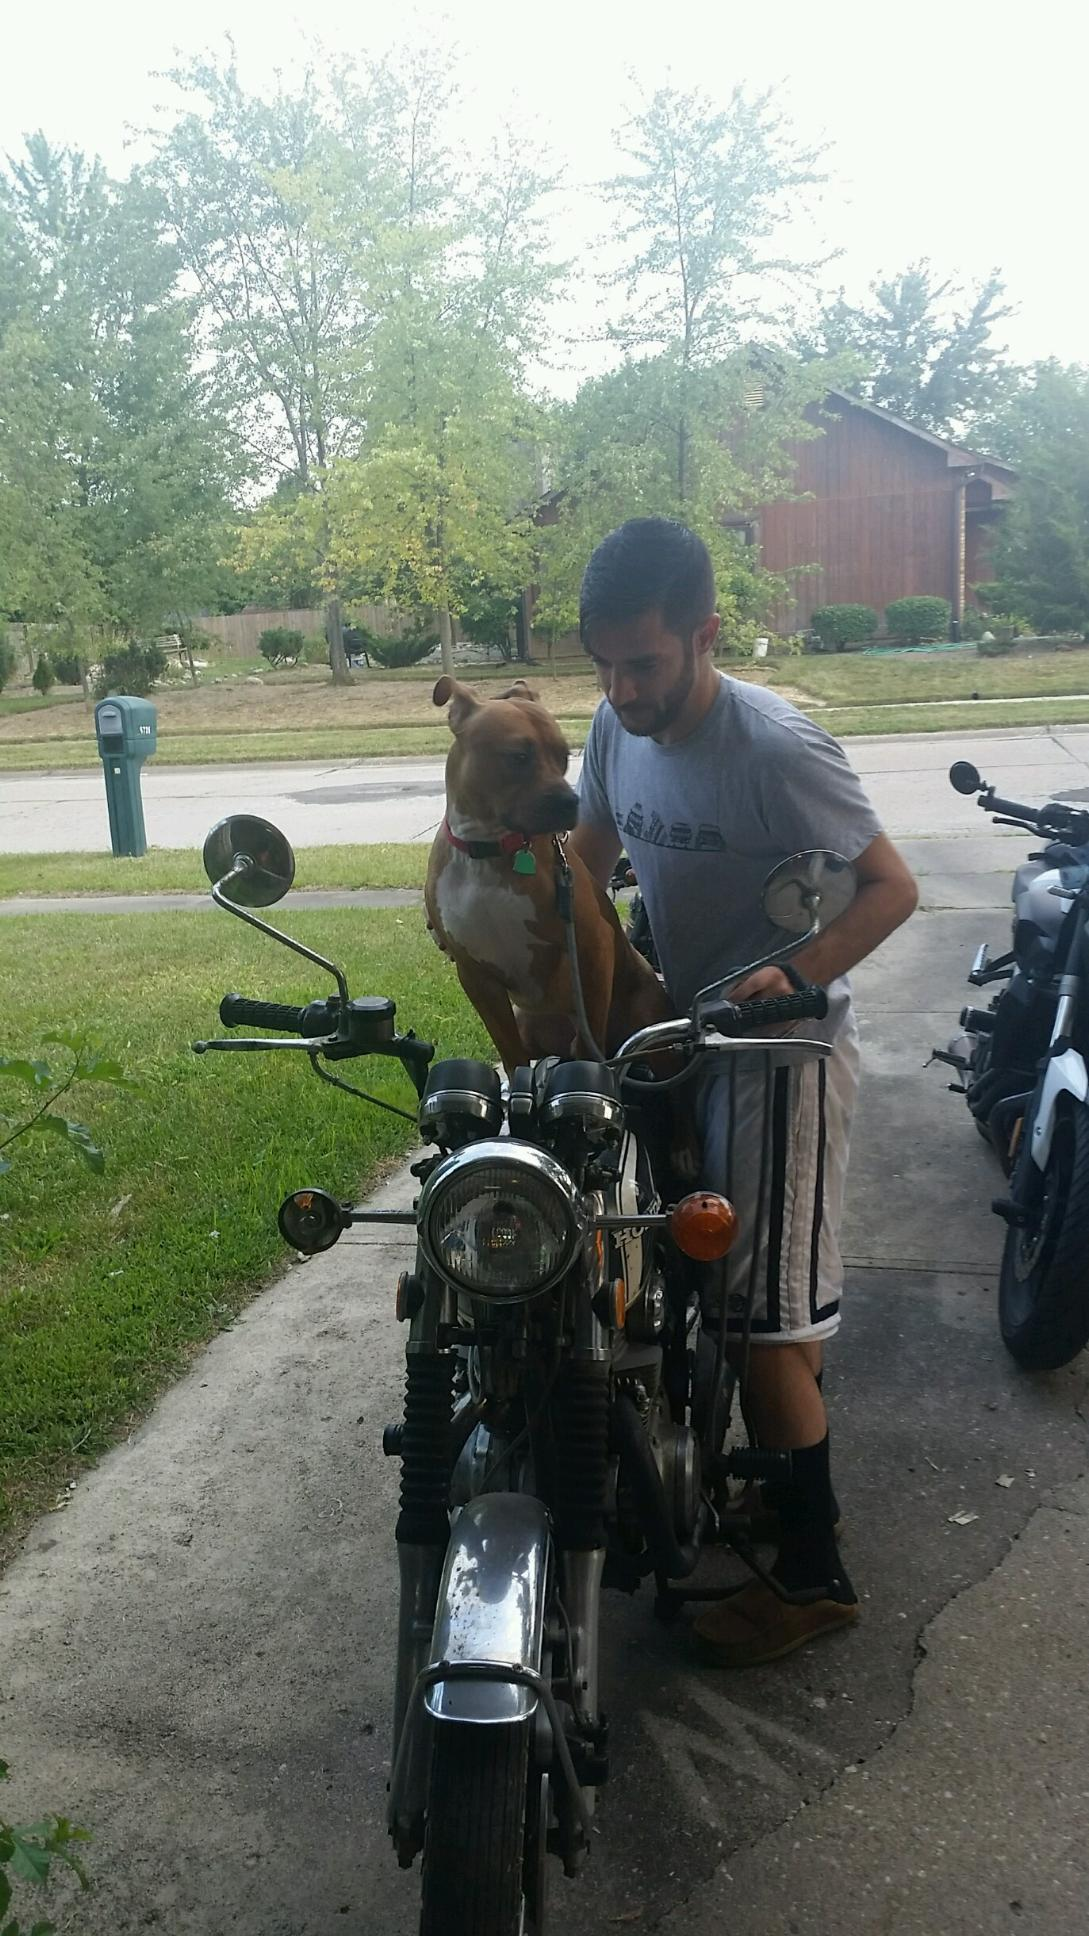 Teaching Red (Craig) to ride a motorcycle. He did not like it.